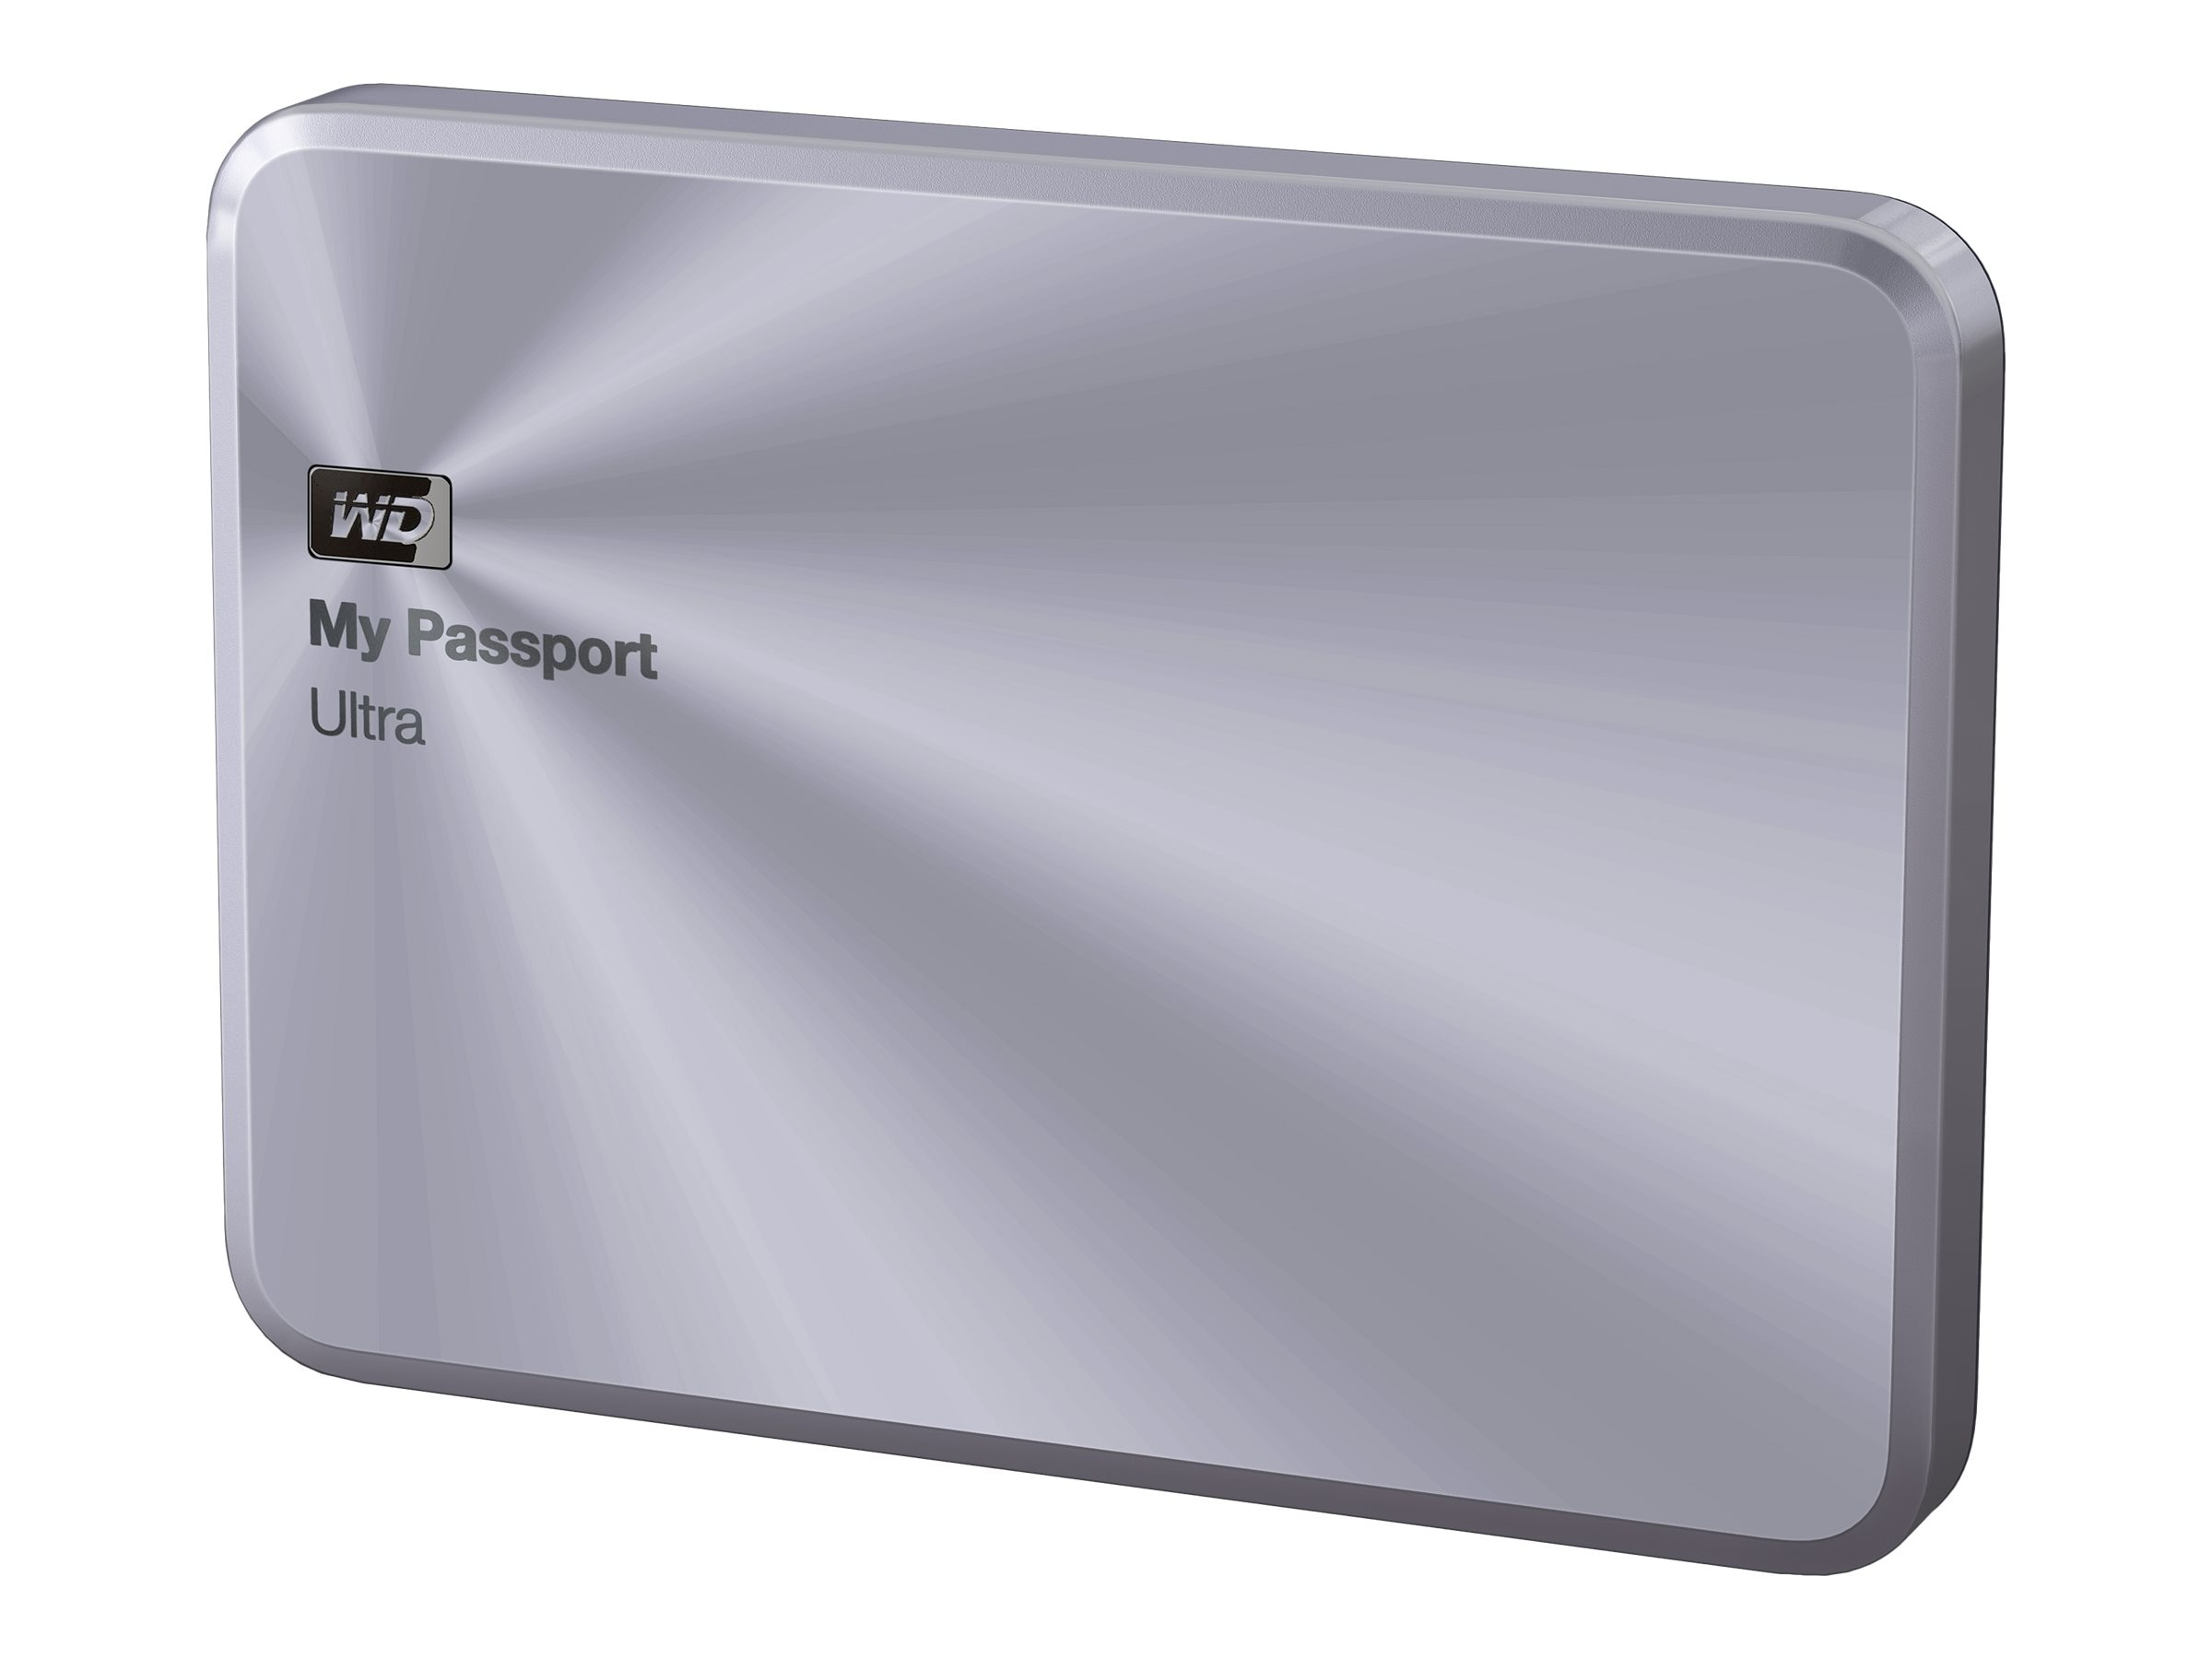 WD 4TB My Passport Ultra Metal Edition USB 3.0 Portable Hard Drive - Silver